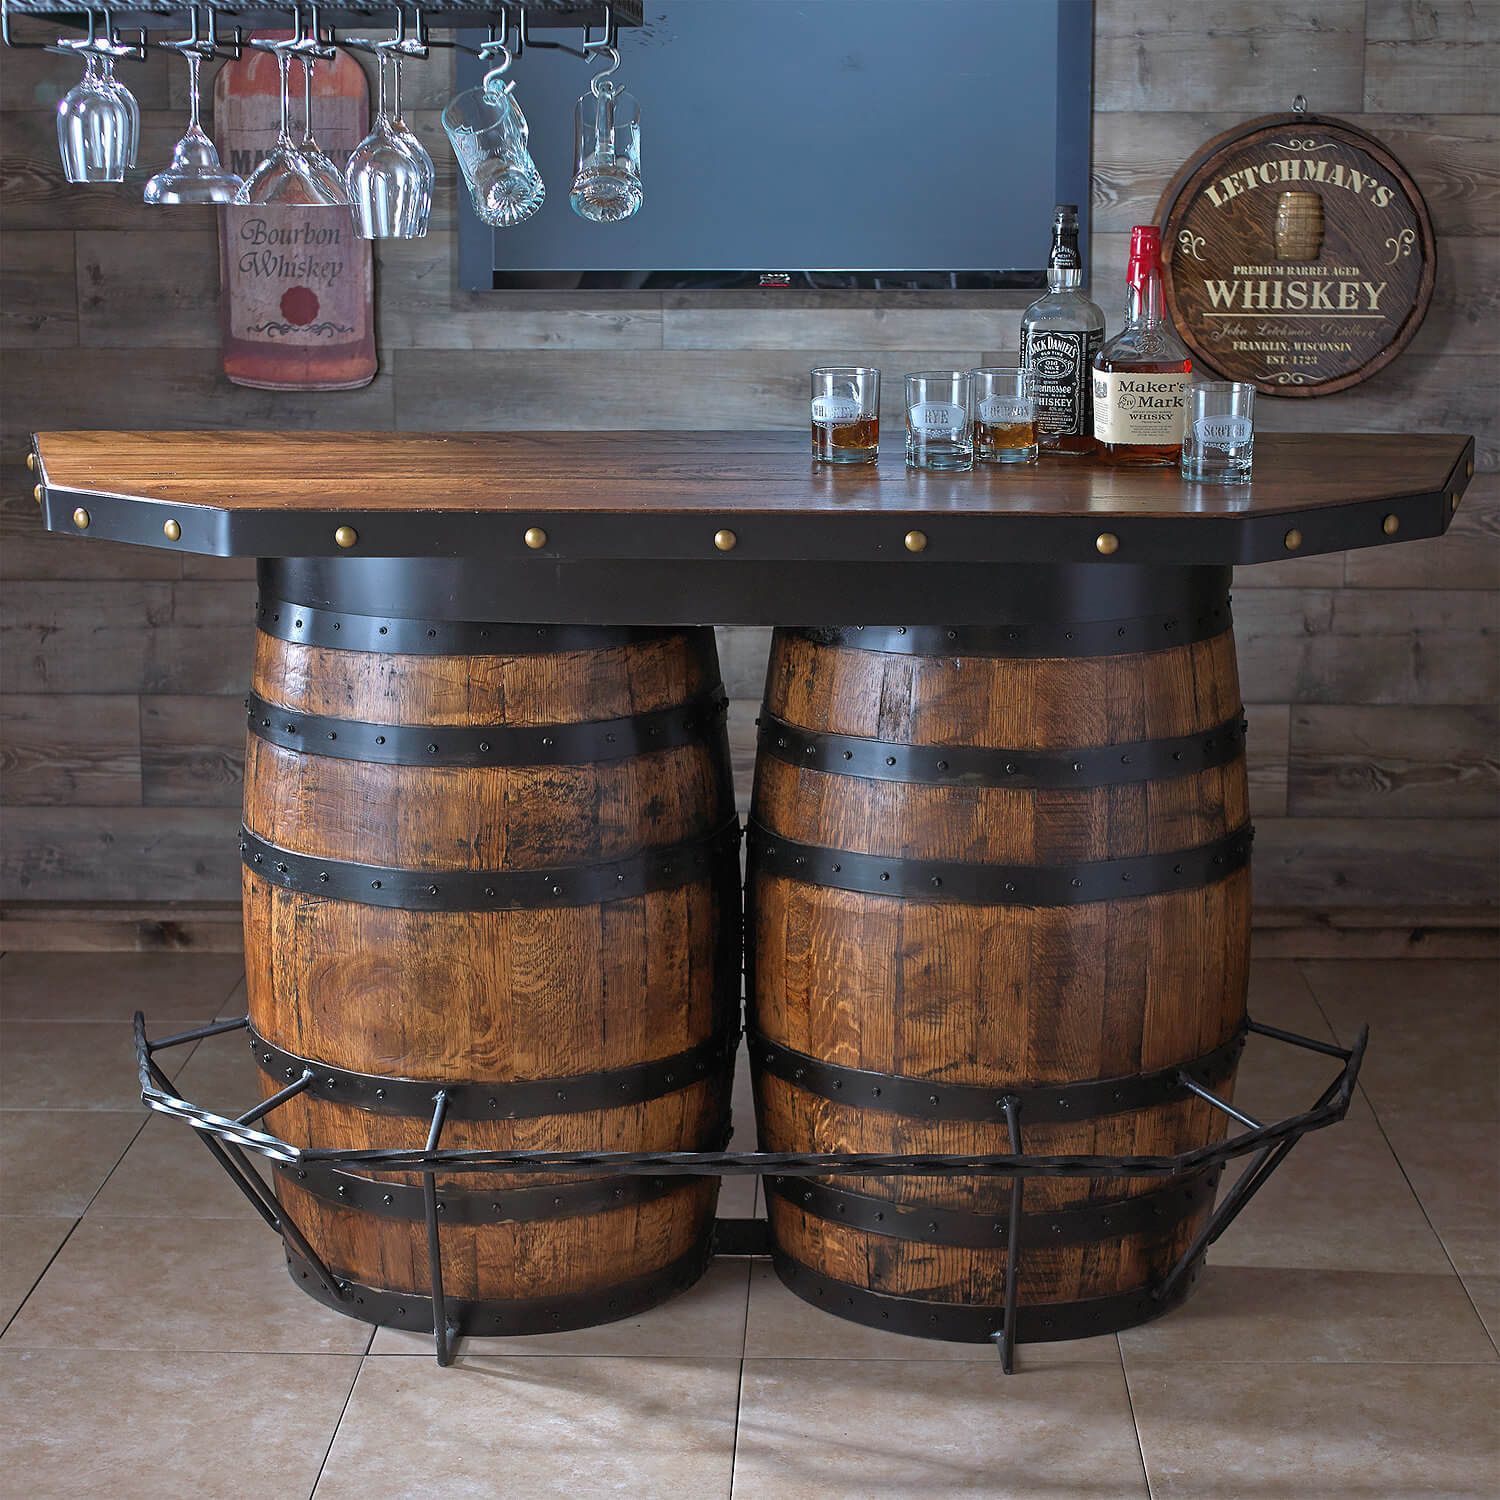 38 creative ideas for reusing old wine barrels barrel